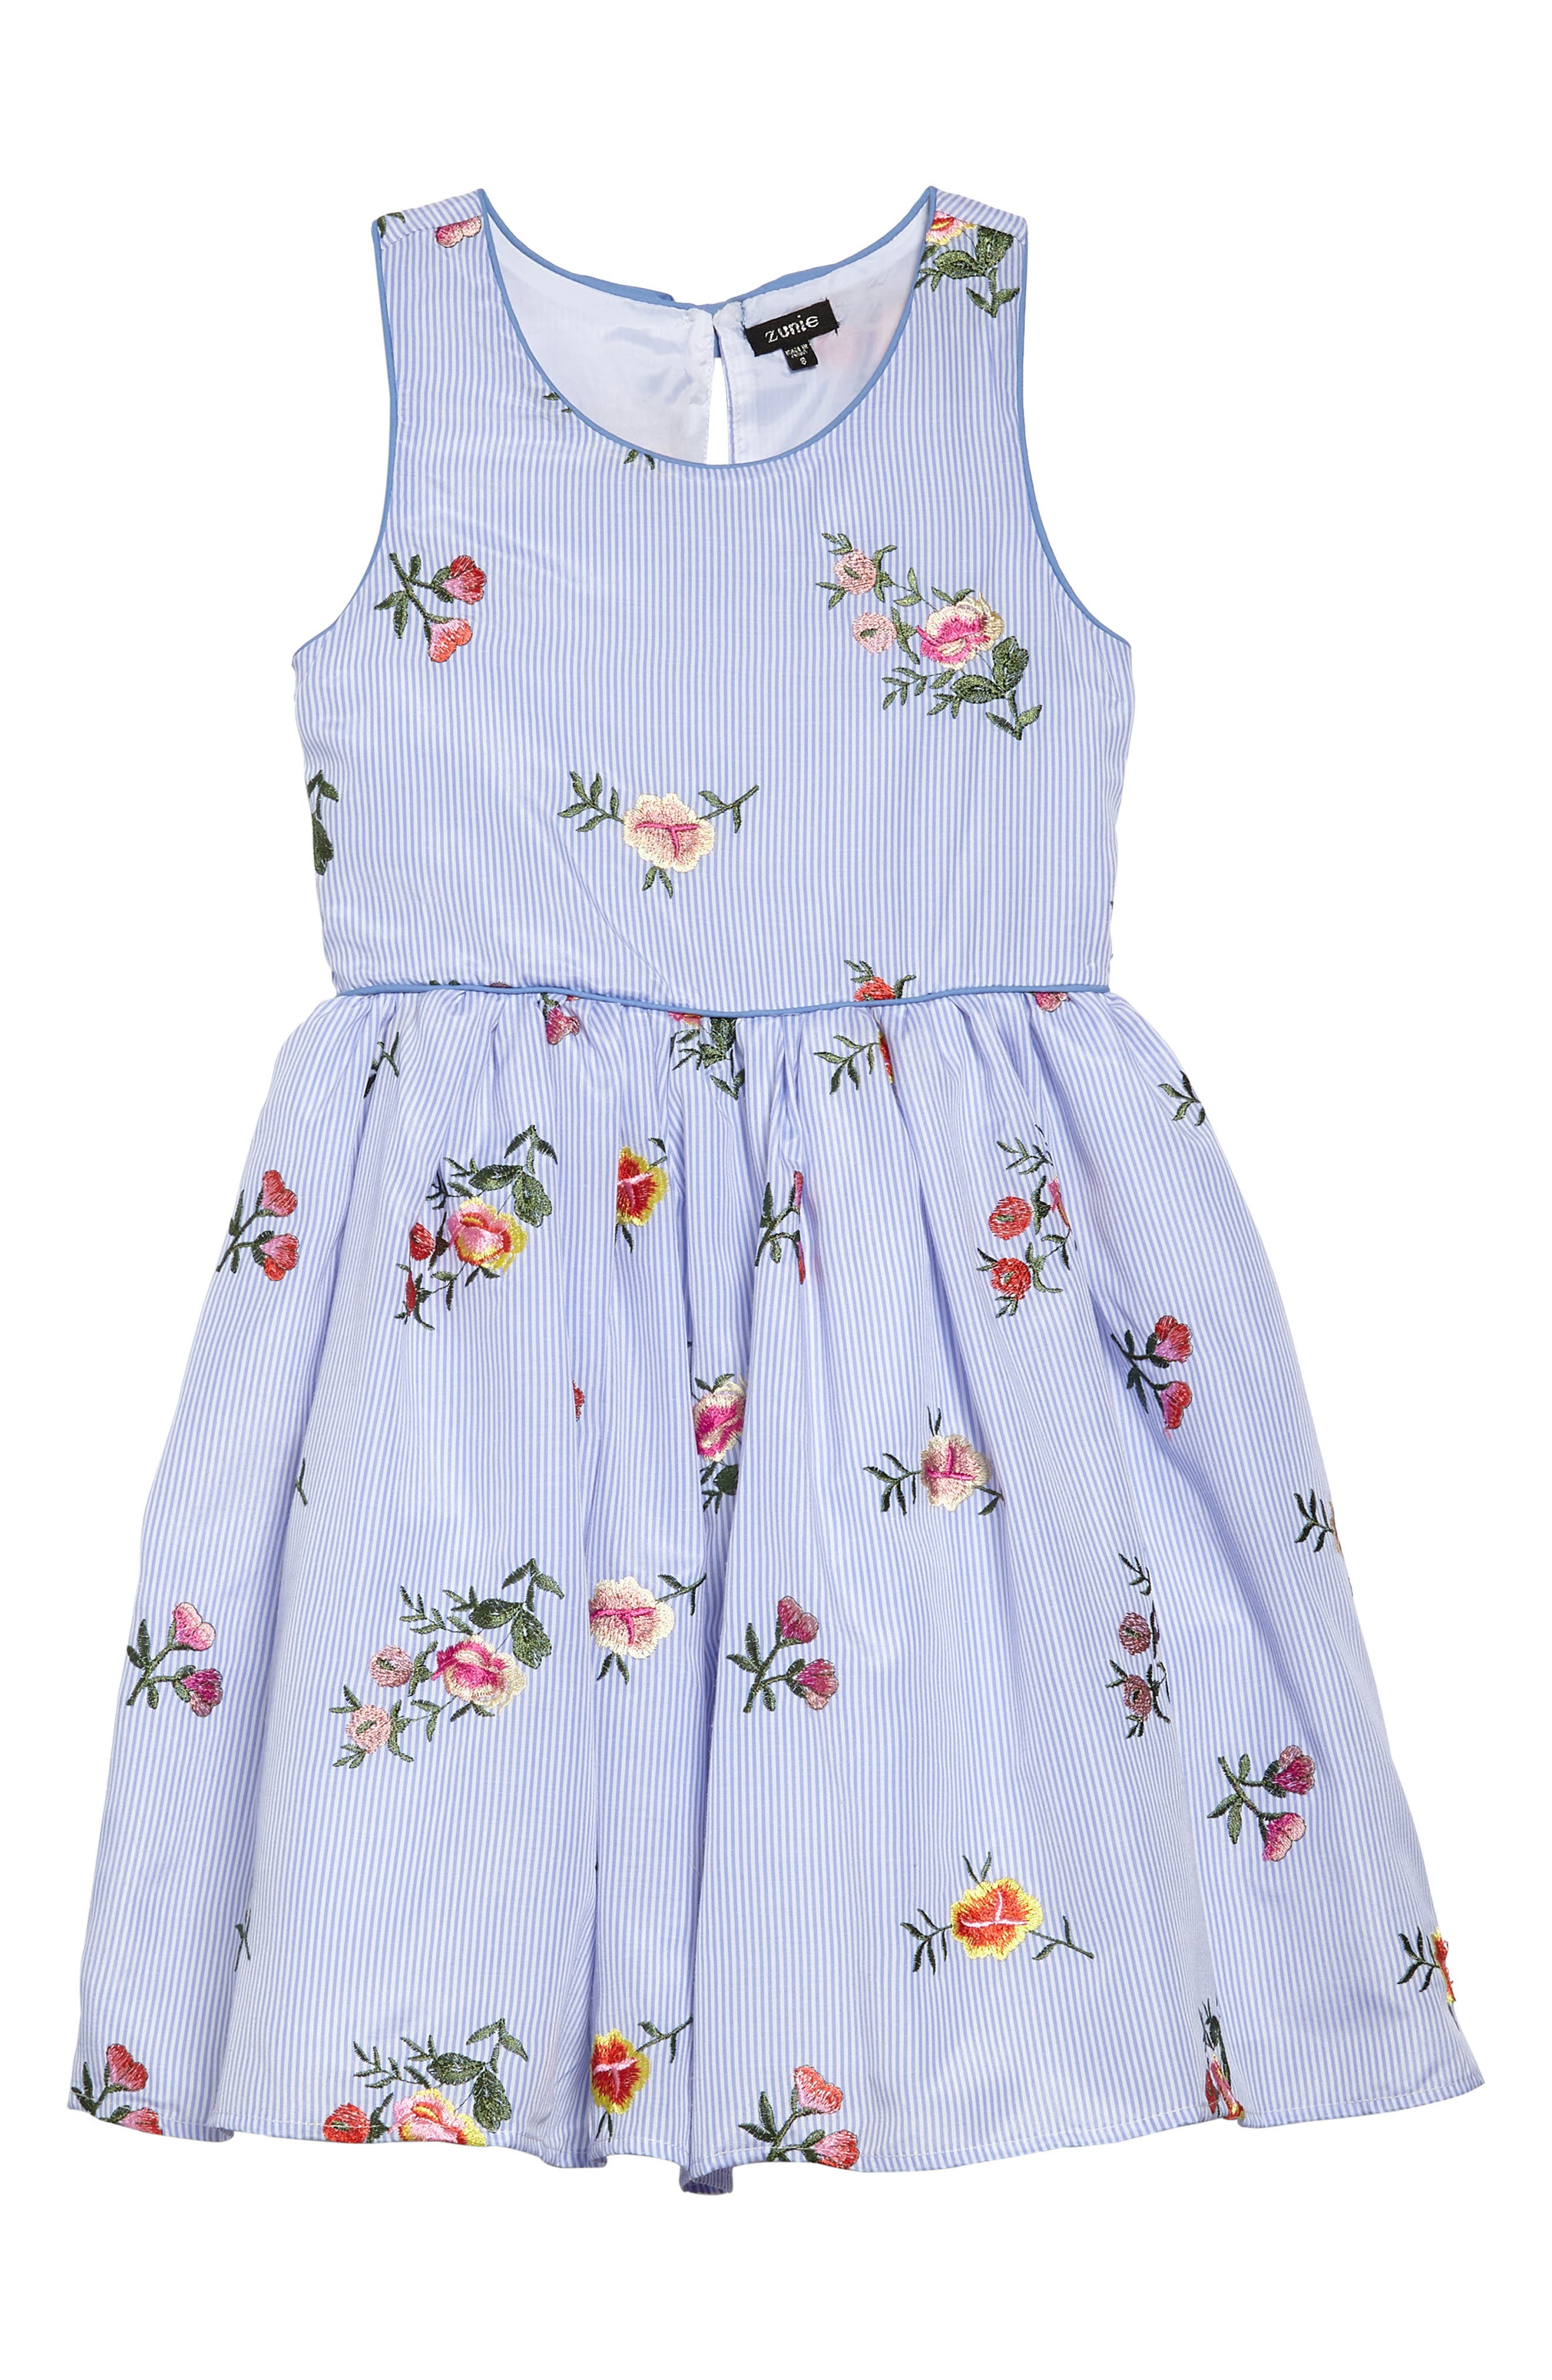 Zunie Stripe Embroidered Flower Sleeveless Dress (Toddler Girls, Little Girls & Big Girls)